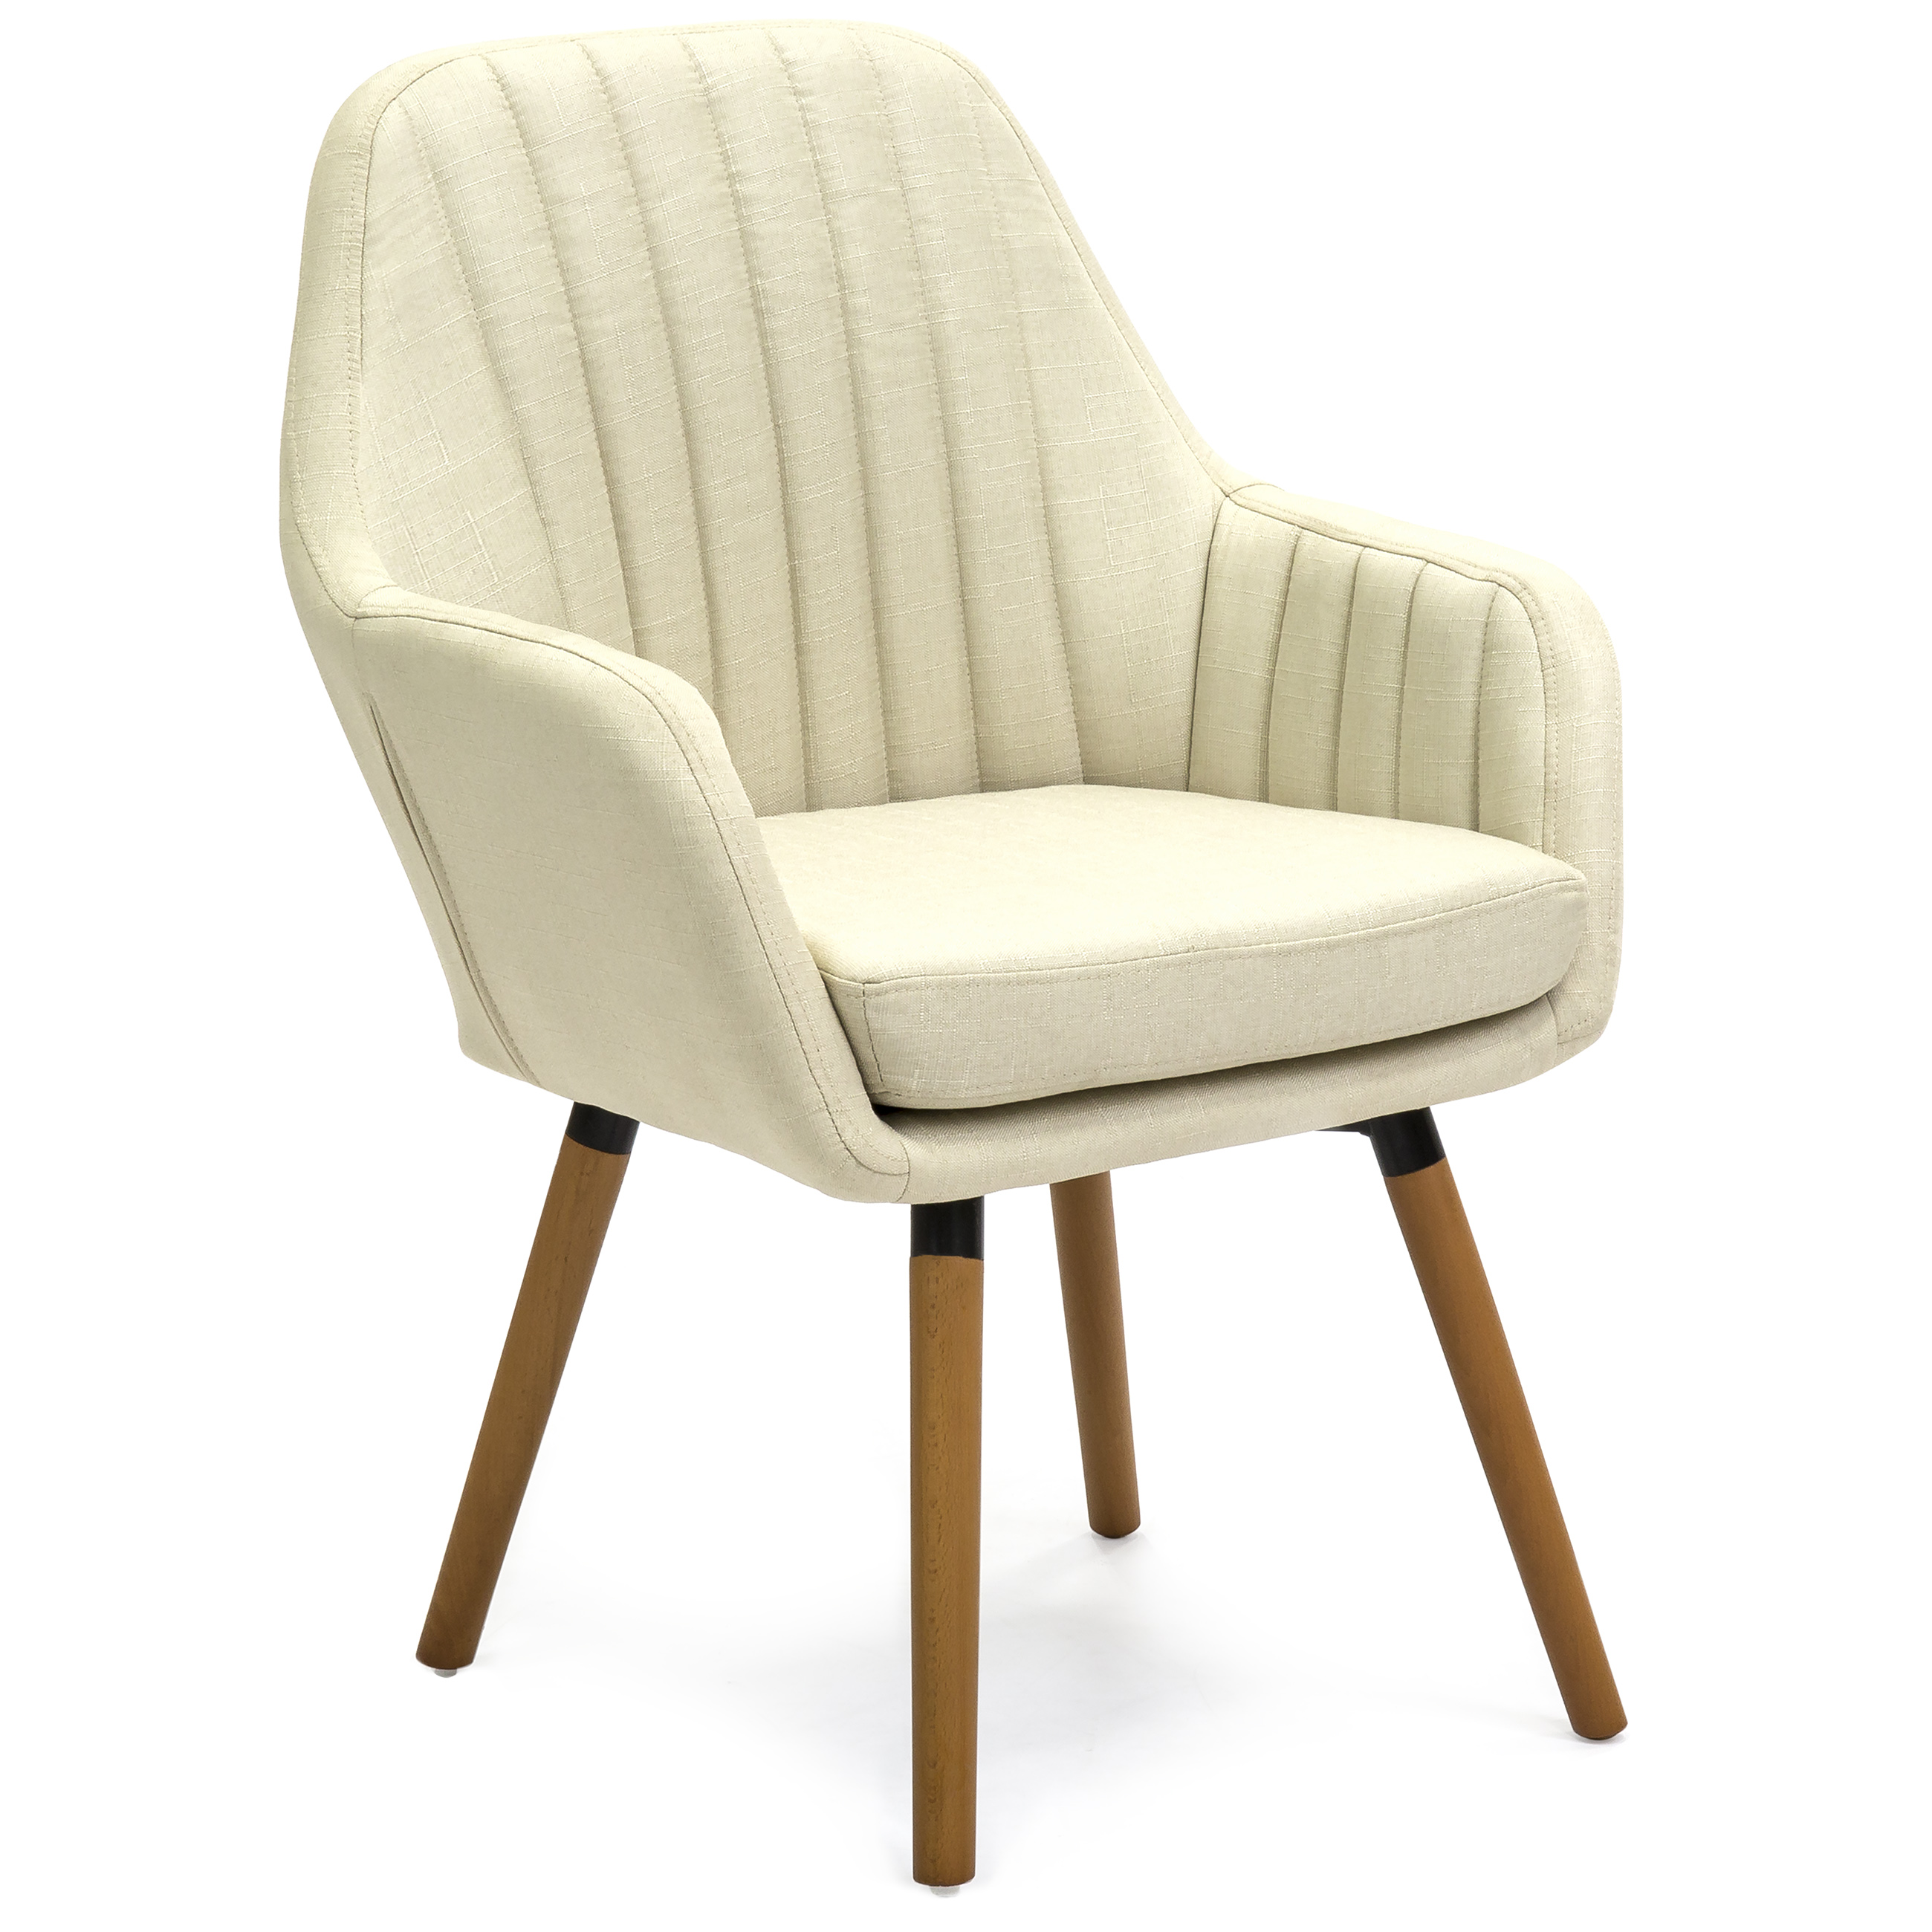 Best Choice Products Mid-Century Modern Line Tufted Accent Chair (Beige) by Best Choice Products